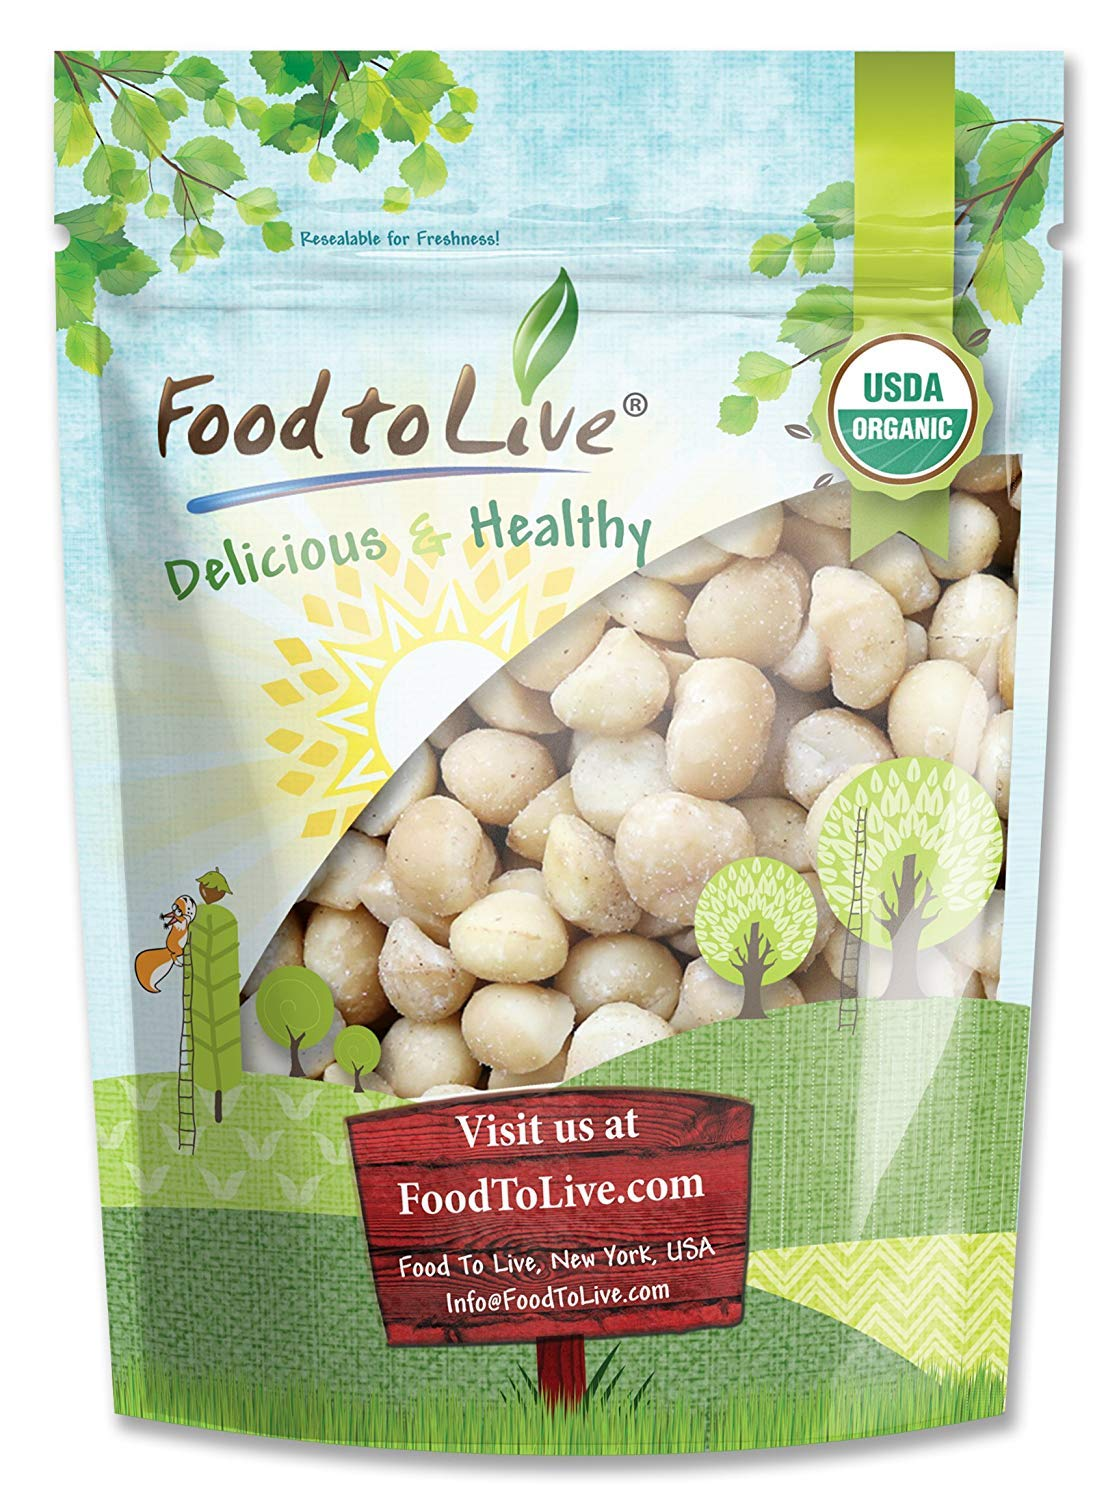 Organic Macadamia Nuts, 8 Ounces - Non-GMO, Kosher, Raw, Vegan by Food to Live